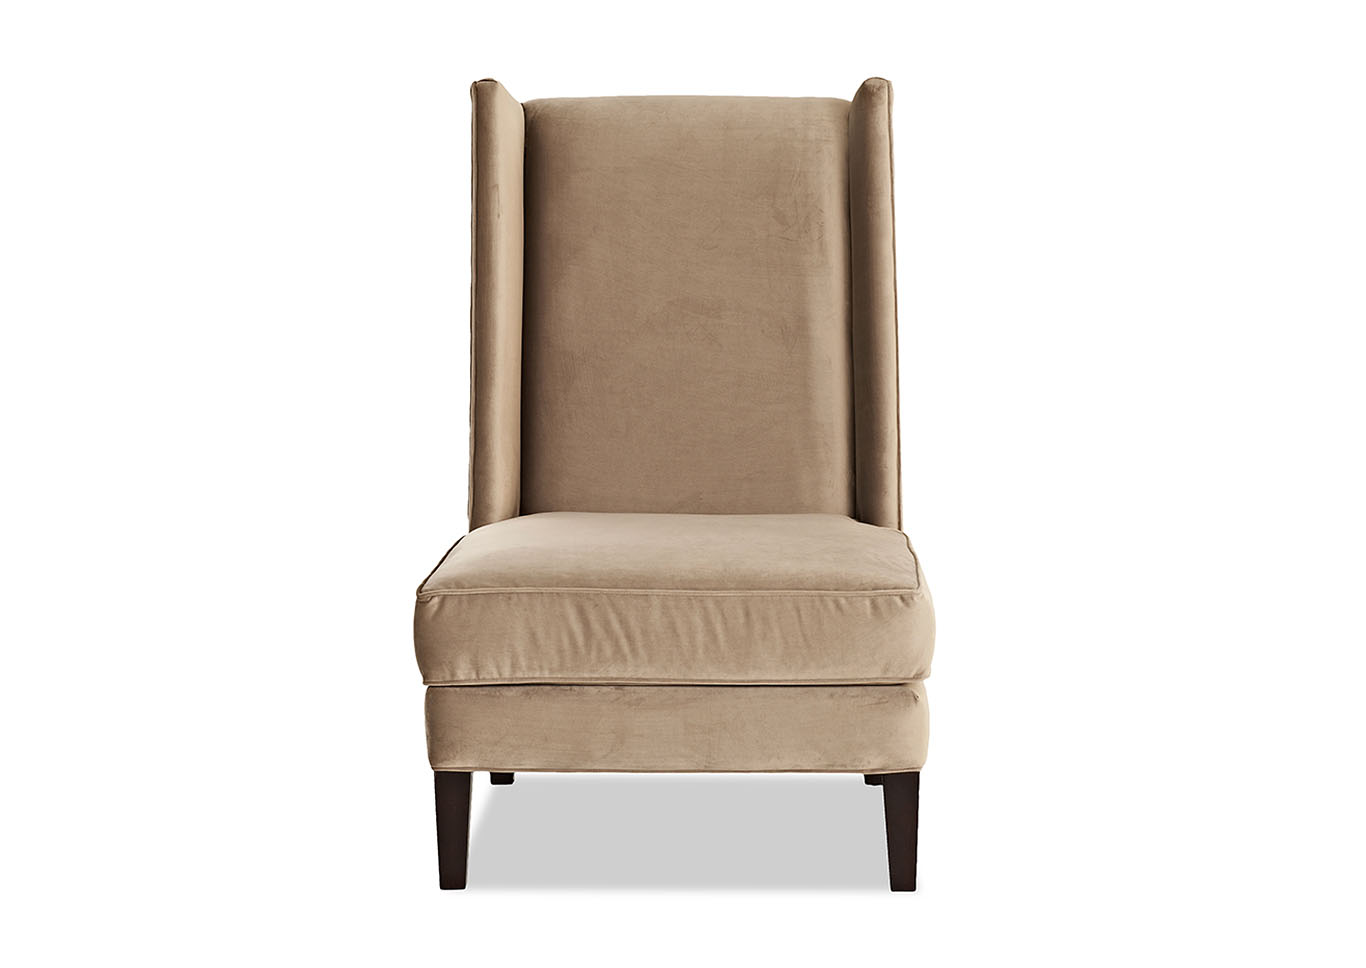 Asher Stationary Fabric Chair,Klaussner Home Furnishings